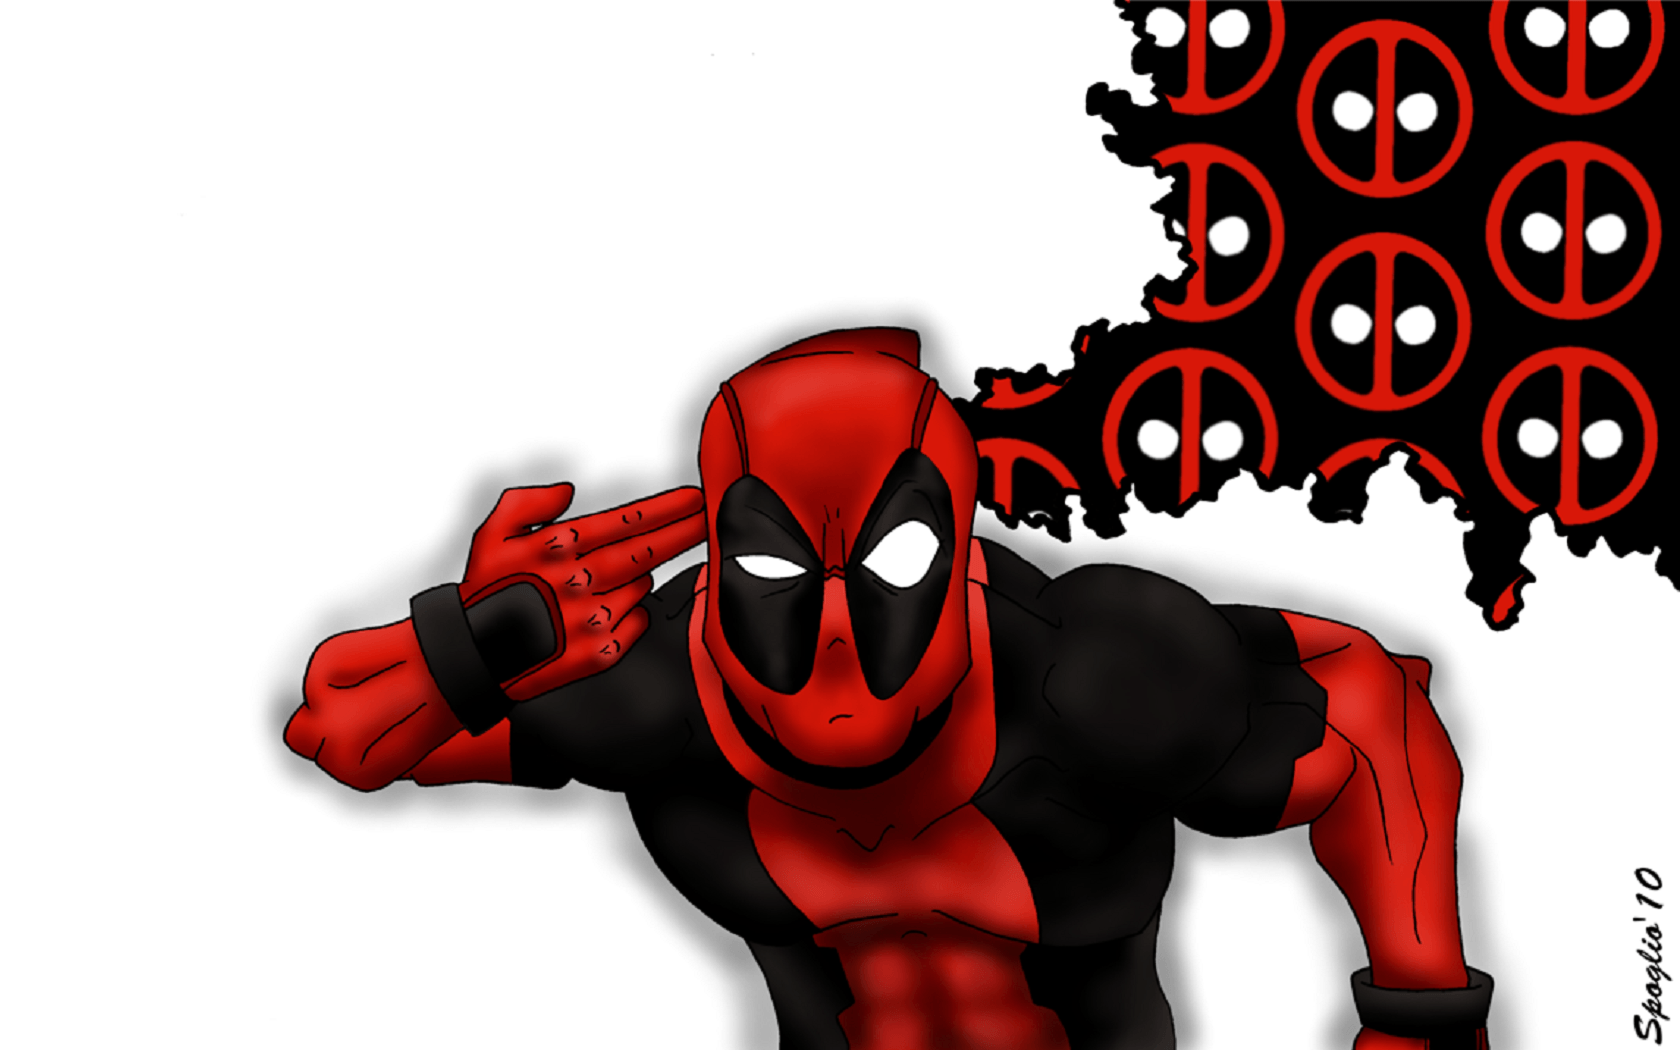 1680x1050 Wallpaper Deadpool by Spoglio91 | Deadpool / Wade Wilson | Know Your ...